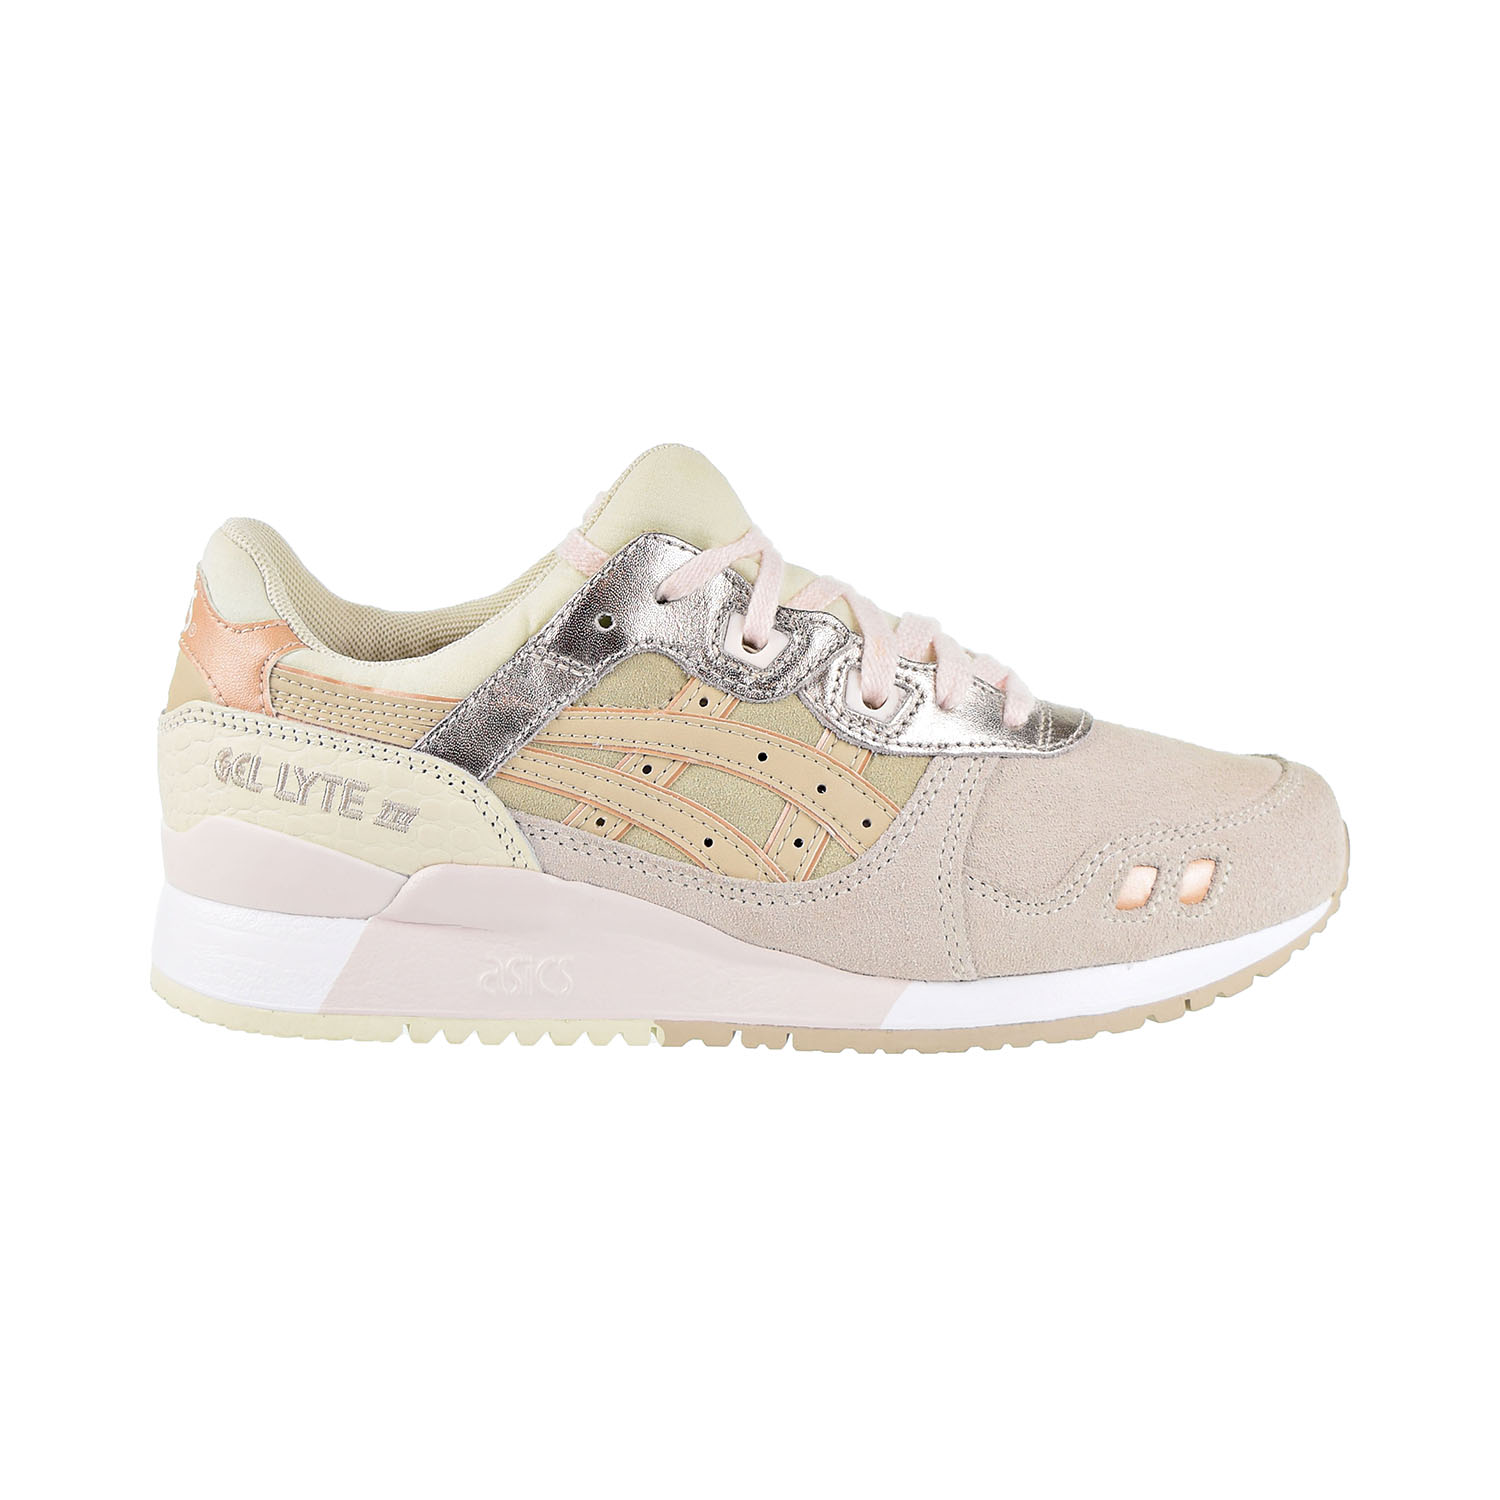 low priced 26d2b 1c82b Details about Asics Gel-Lyte III Women's Shoes Blush/Feather Grey  1192A114-700